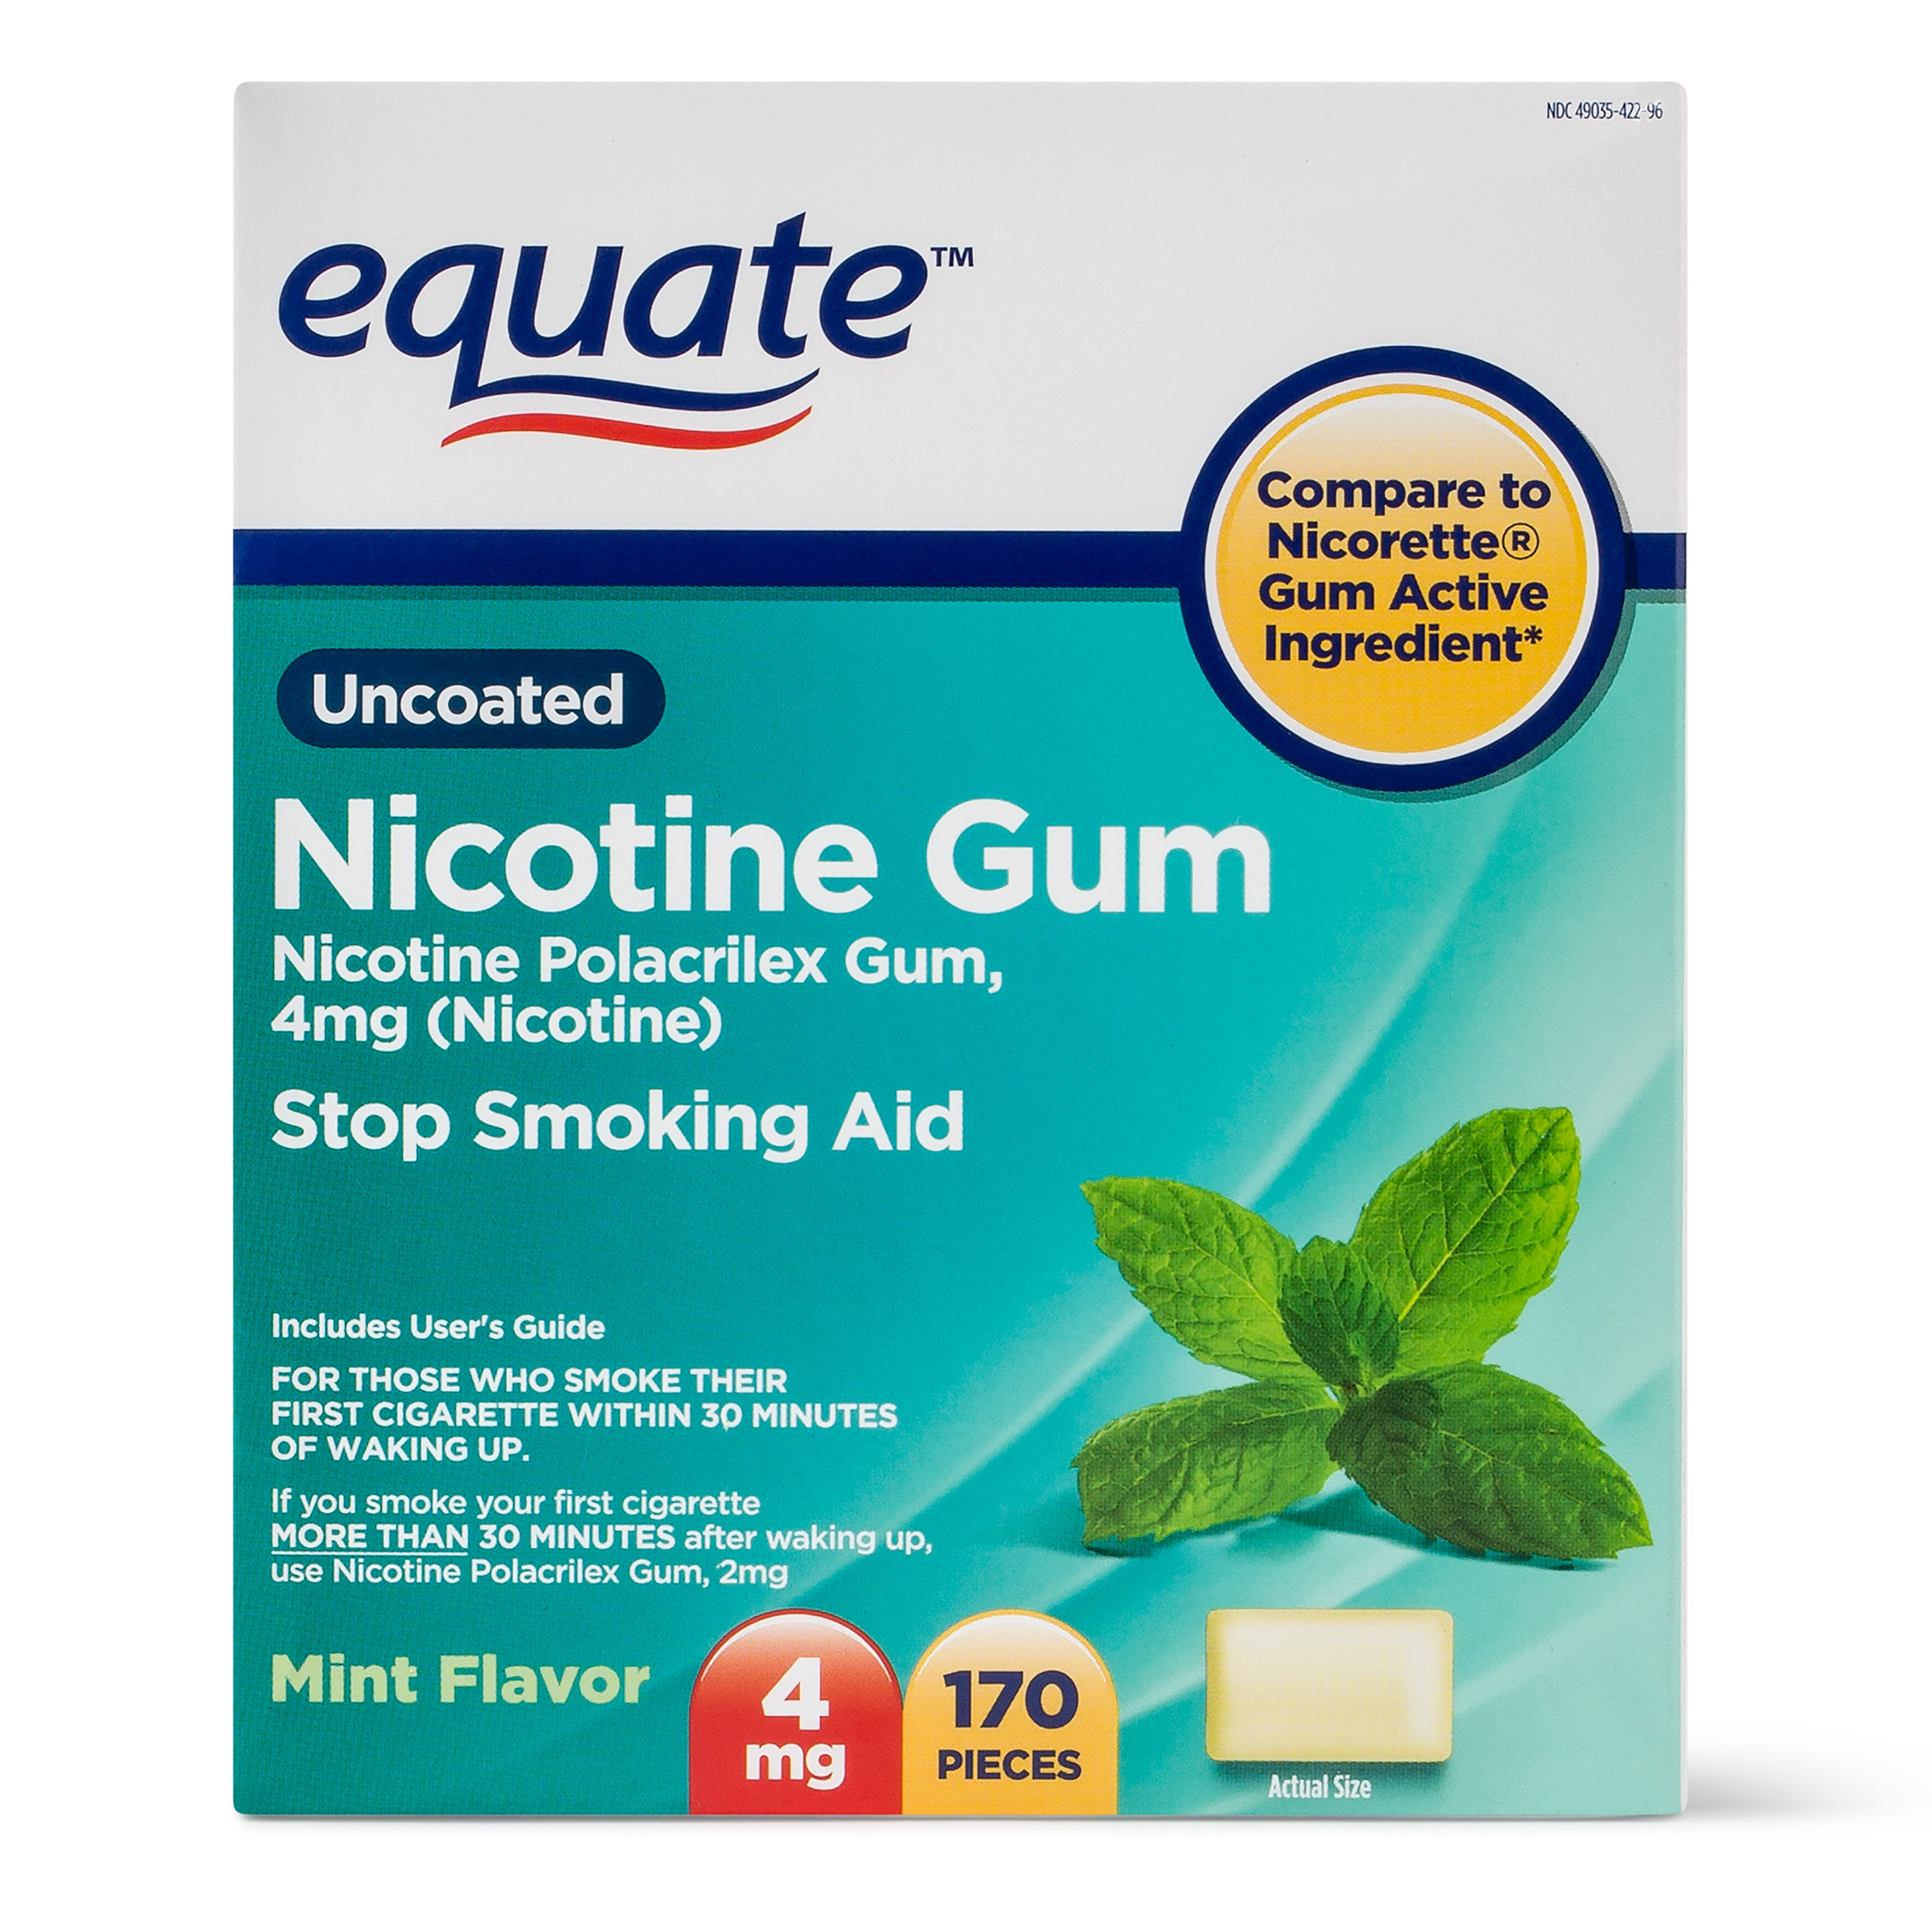 Equate Uncoated Nicotine Gum Stop Smoking Aid Mint Flavor, 4mg, 170 Ct